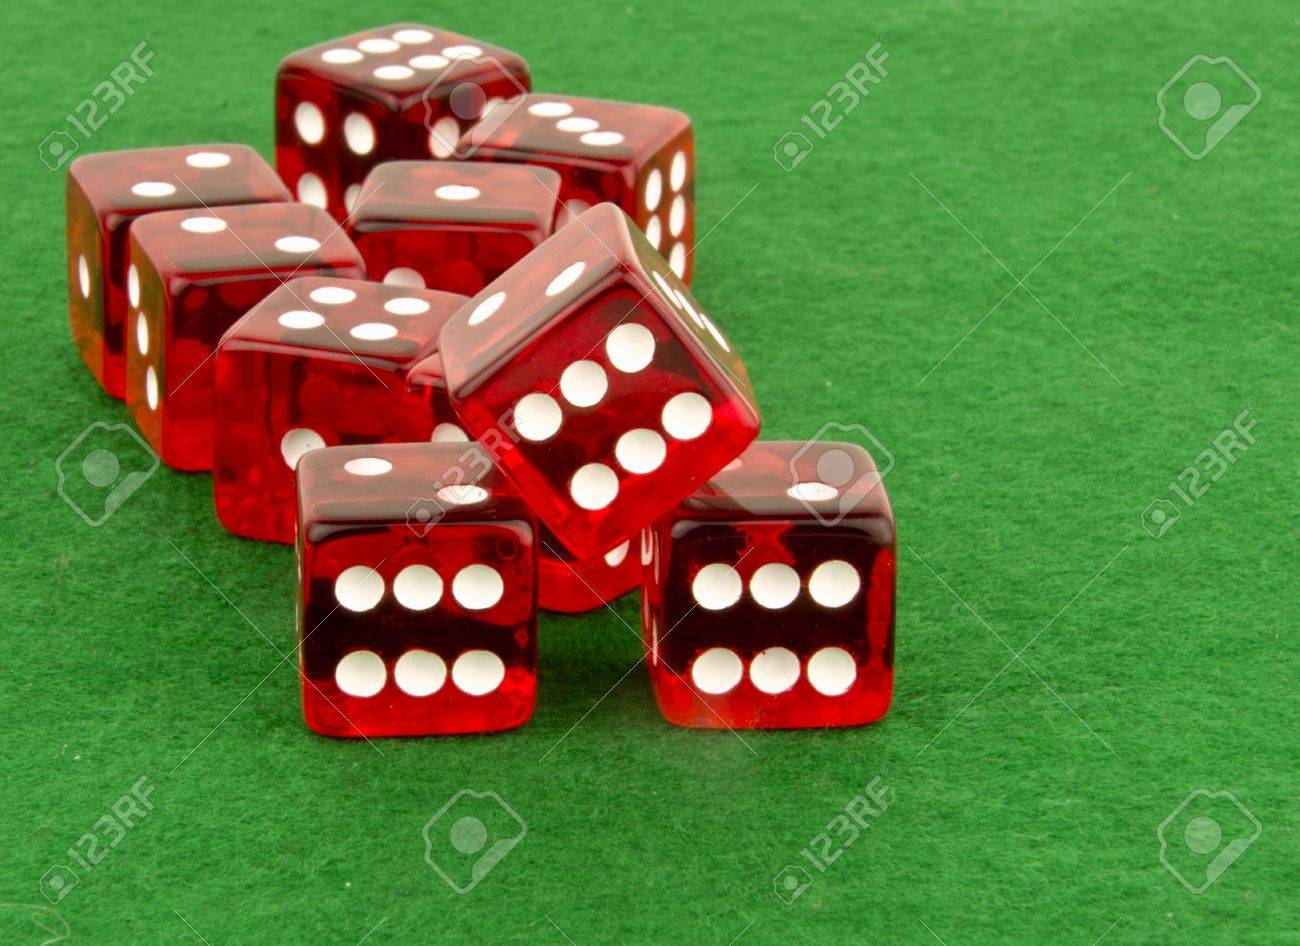 multiple red dice on green cloth Stock Photo - 16196002